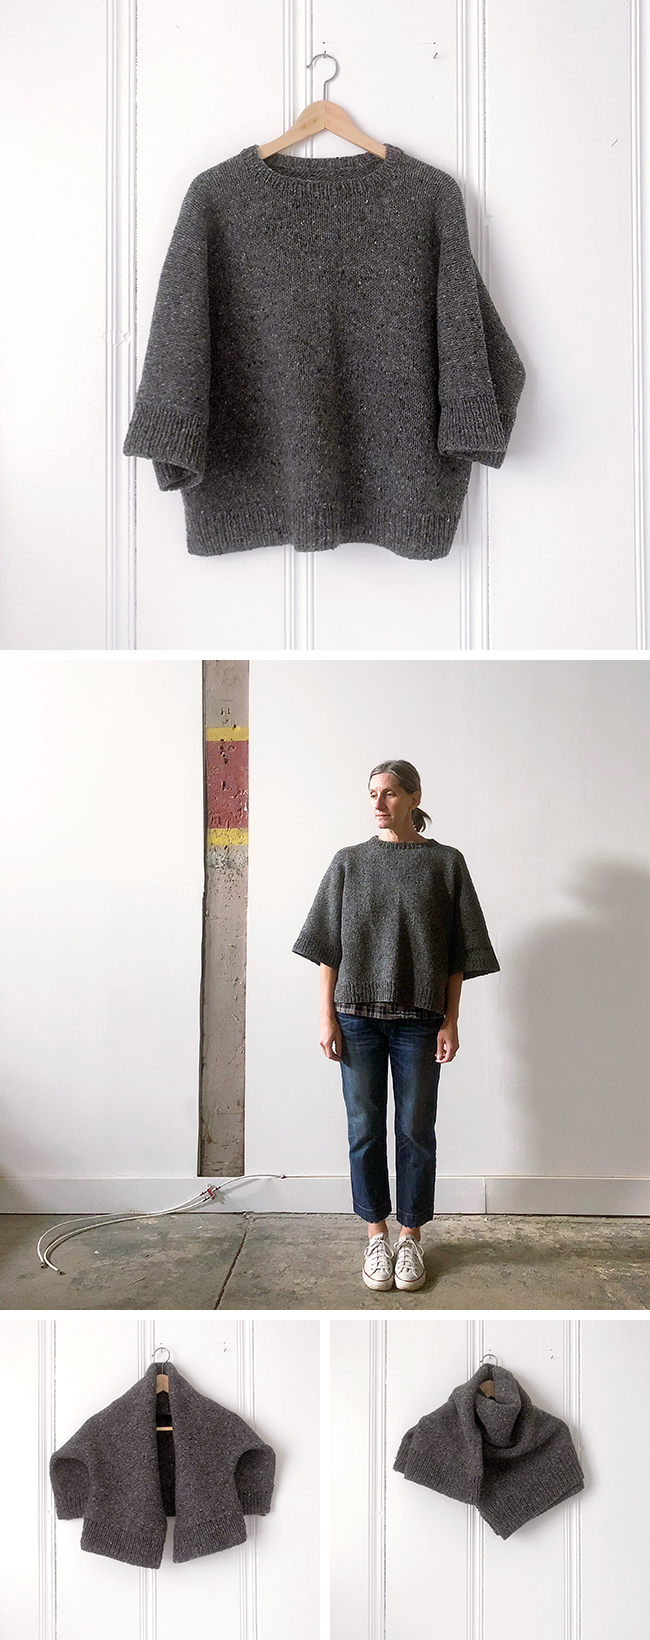 Instant sweater No.1: Big Rubble